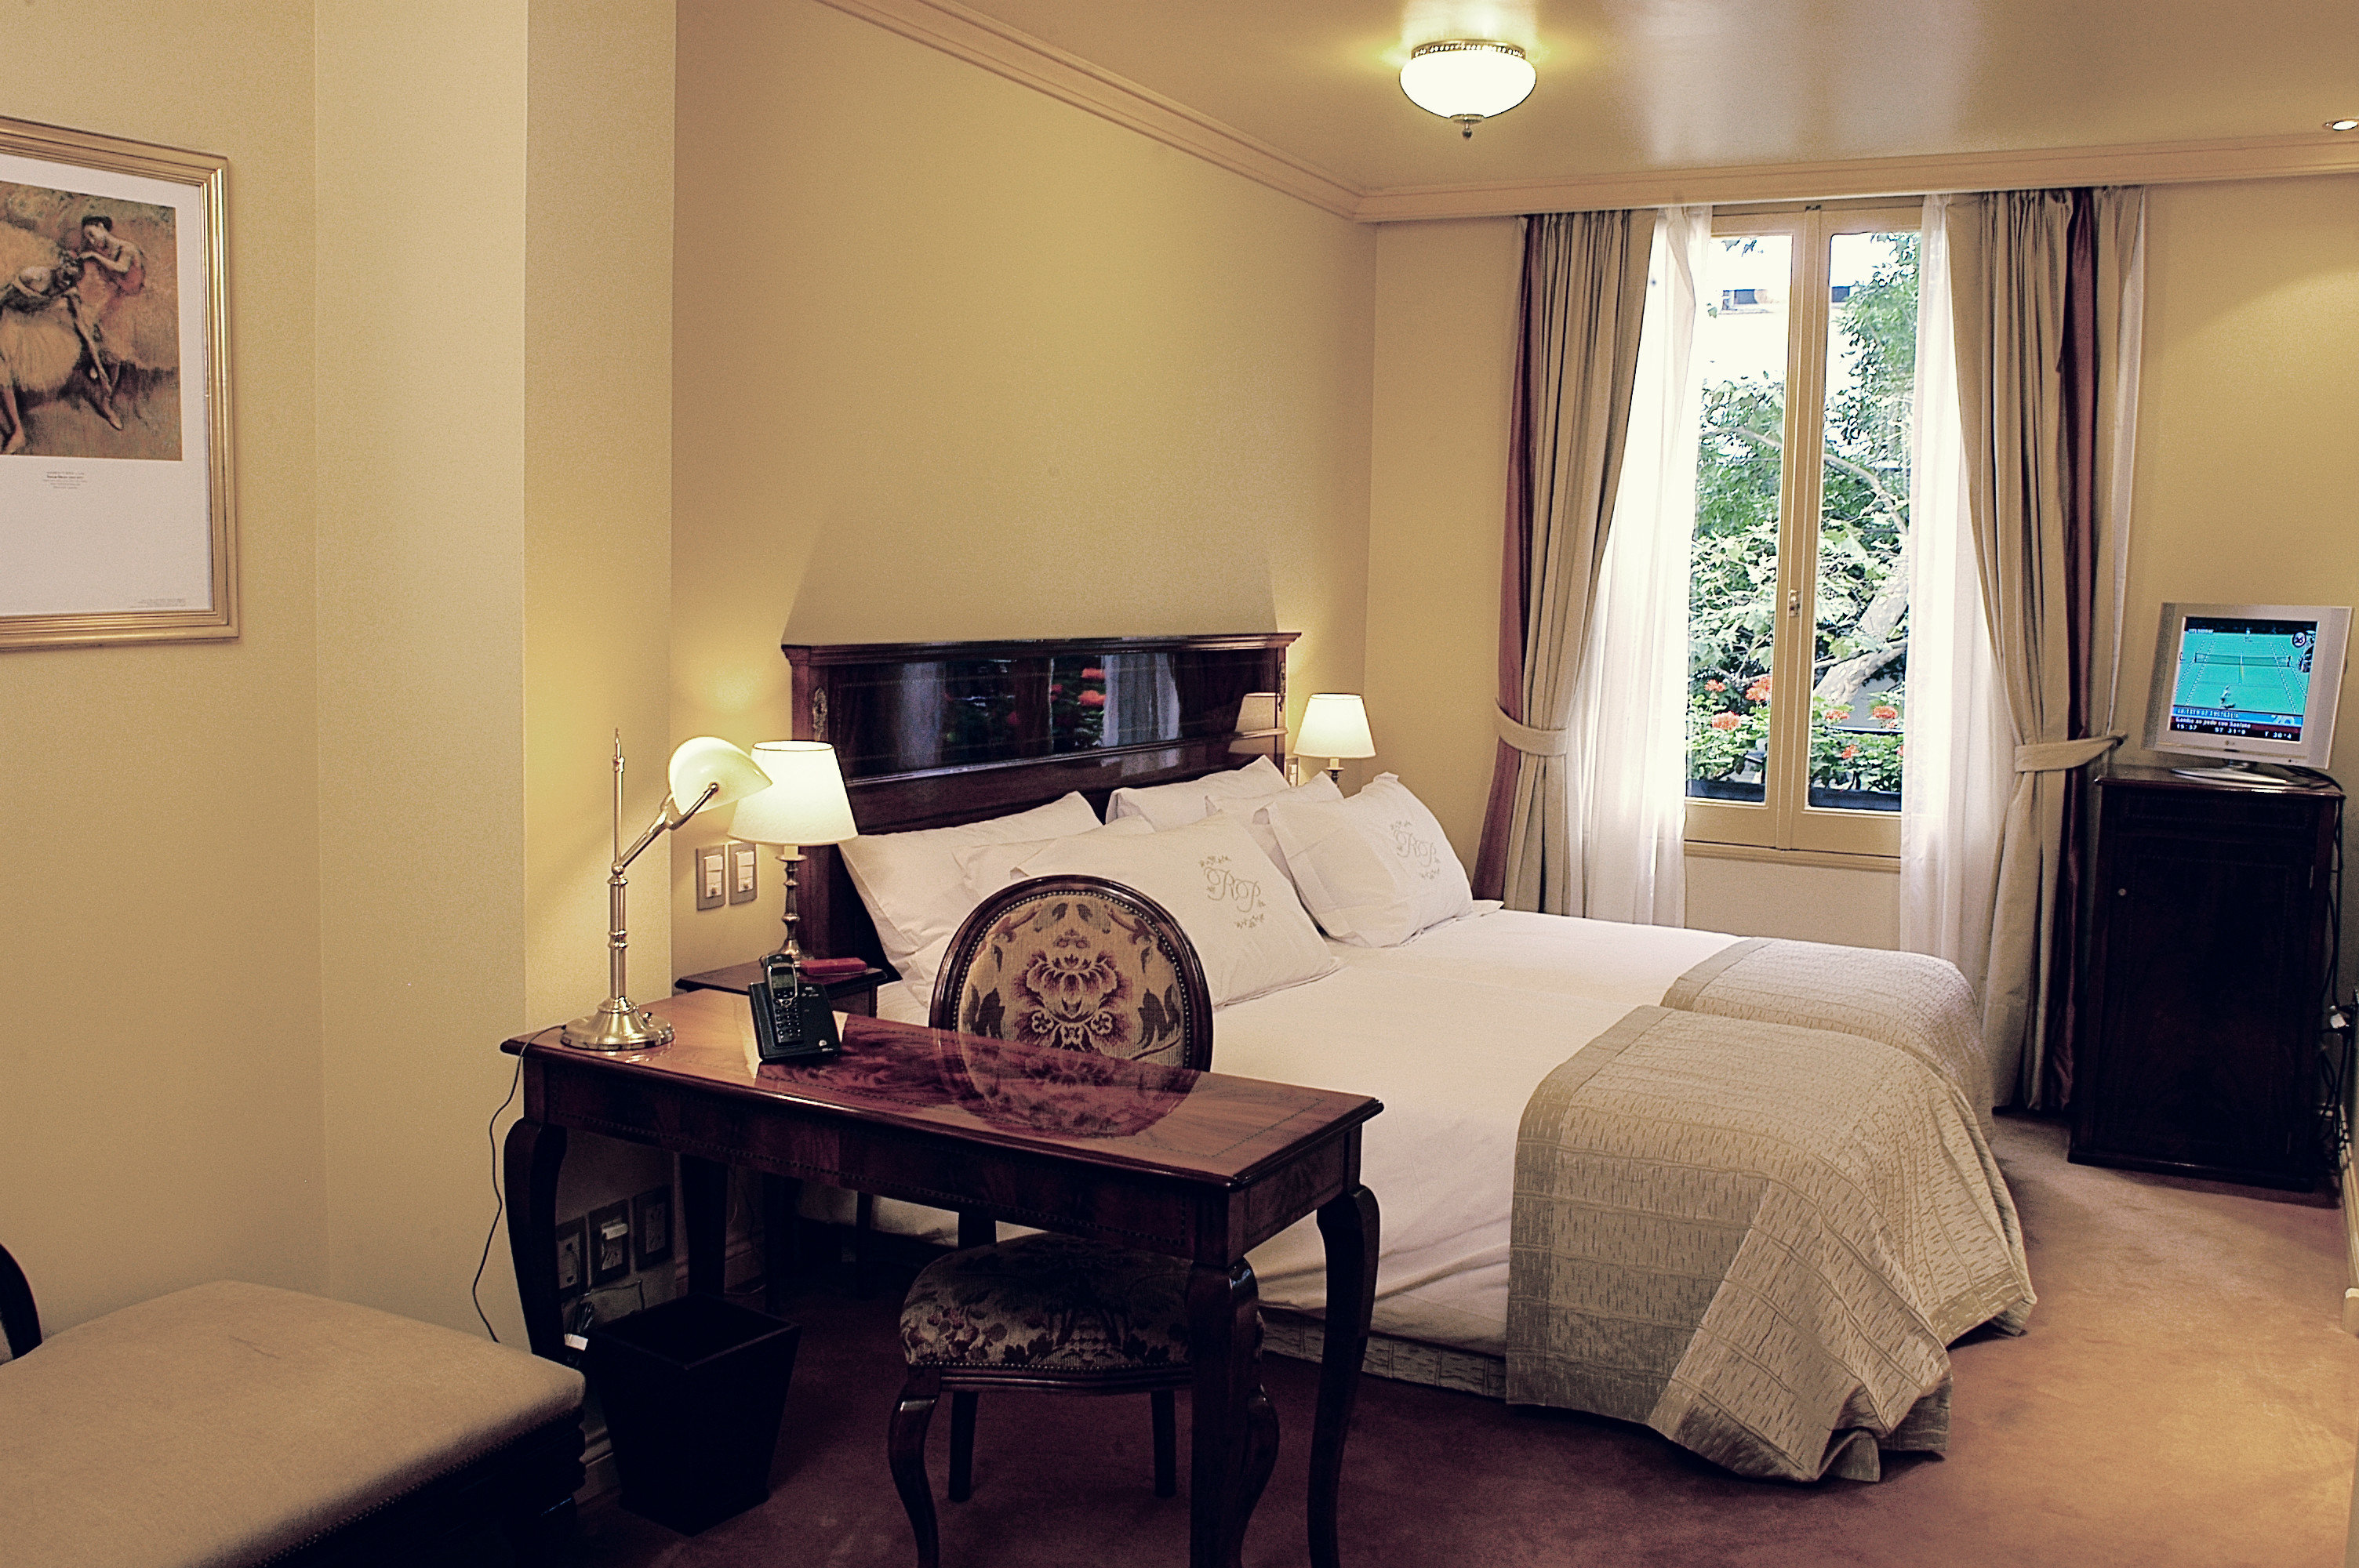 Bedroom City Classic Cultural living room property home house Suite cottage condominium